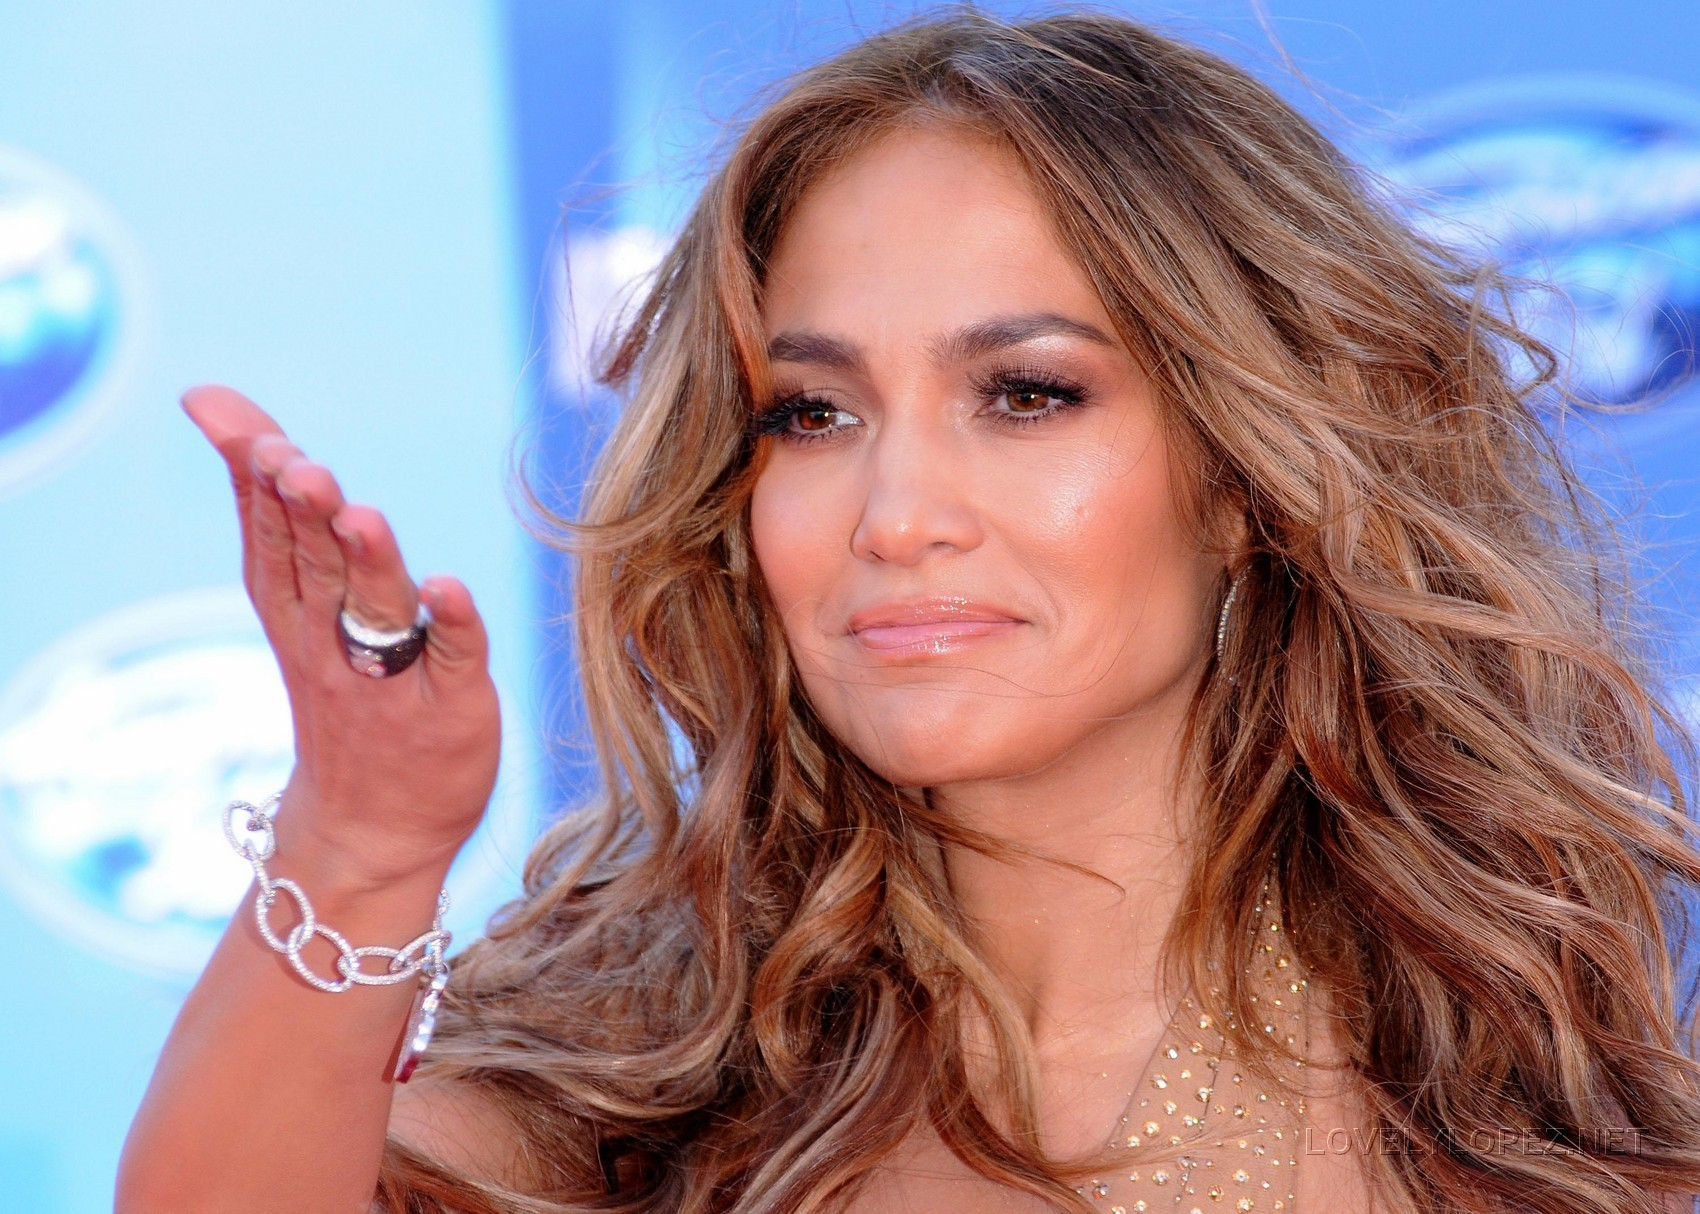 free superb widescreen jennifer lopez picture